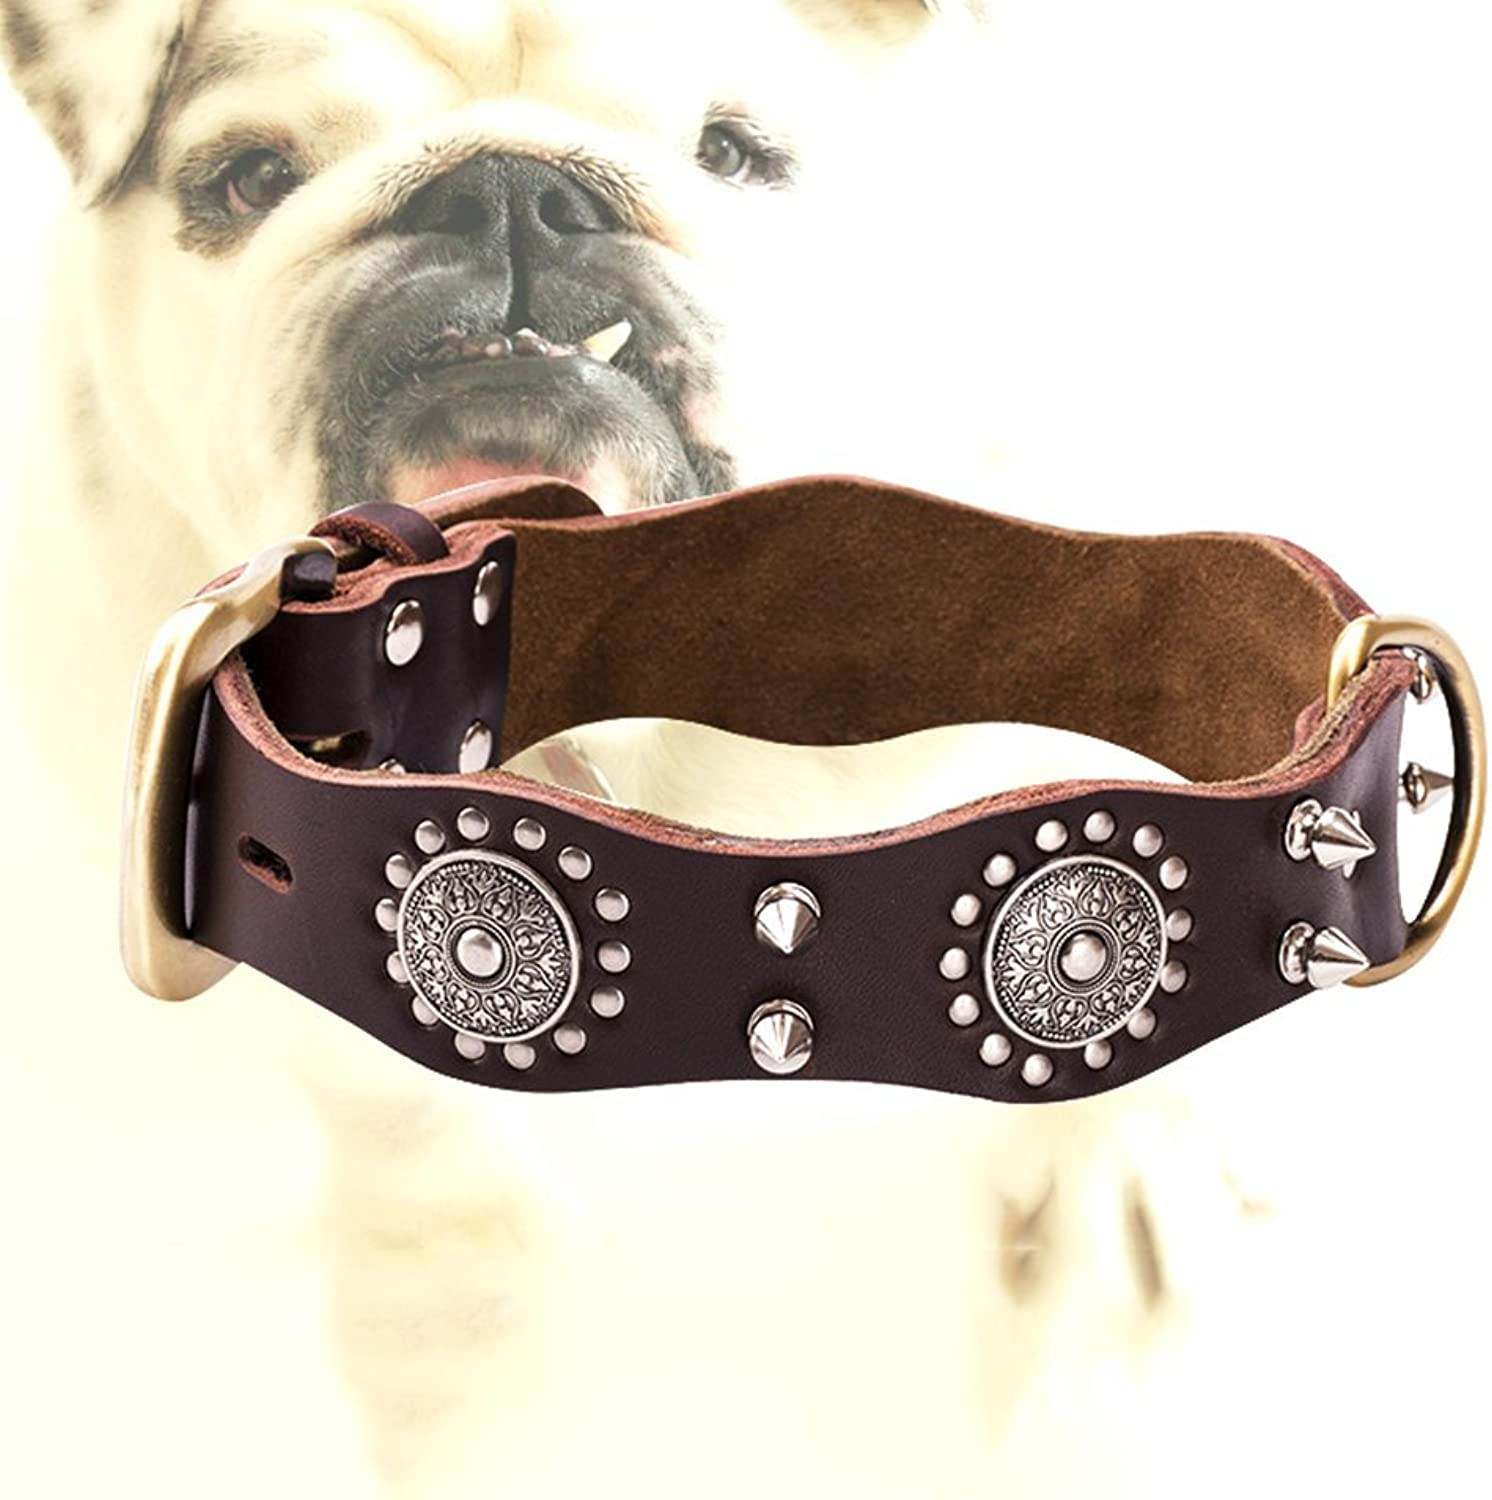 Safety Dog Collars Pet Wave Edge Dog Collar Dog Collar Pet Traction Explosion  Proof Resistance to Pull Bite Resistant Don't Clip Hair XQ06034